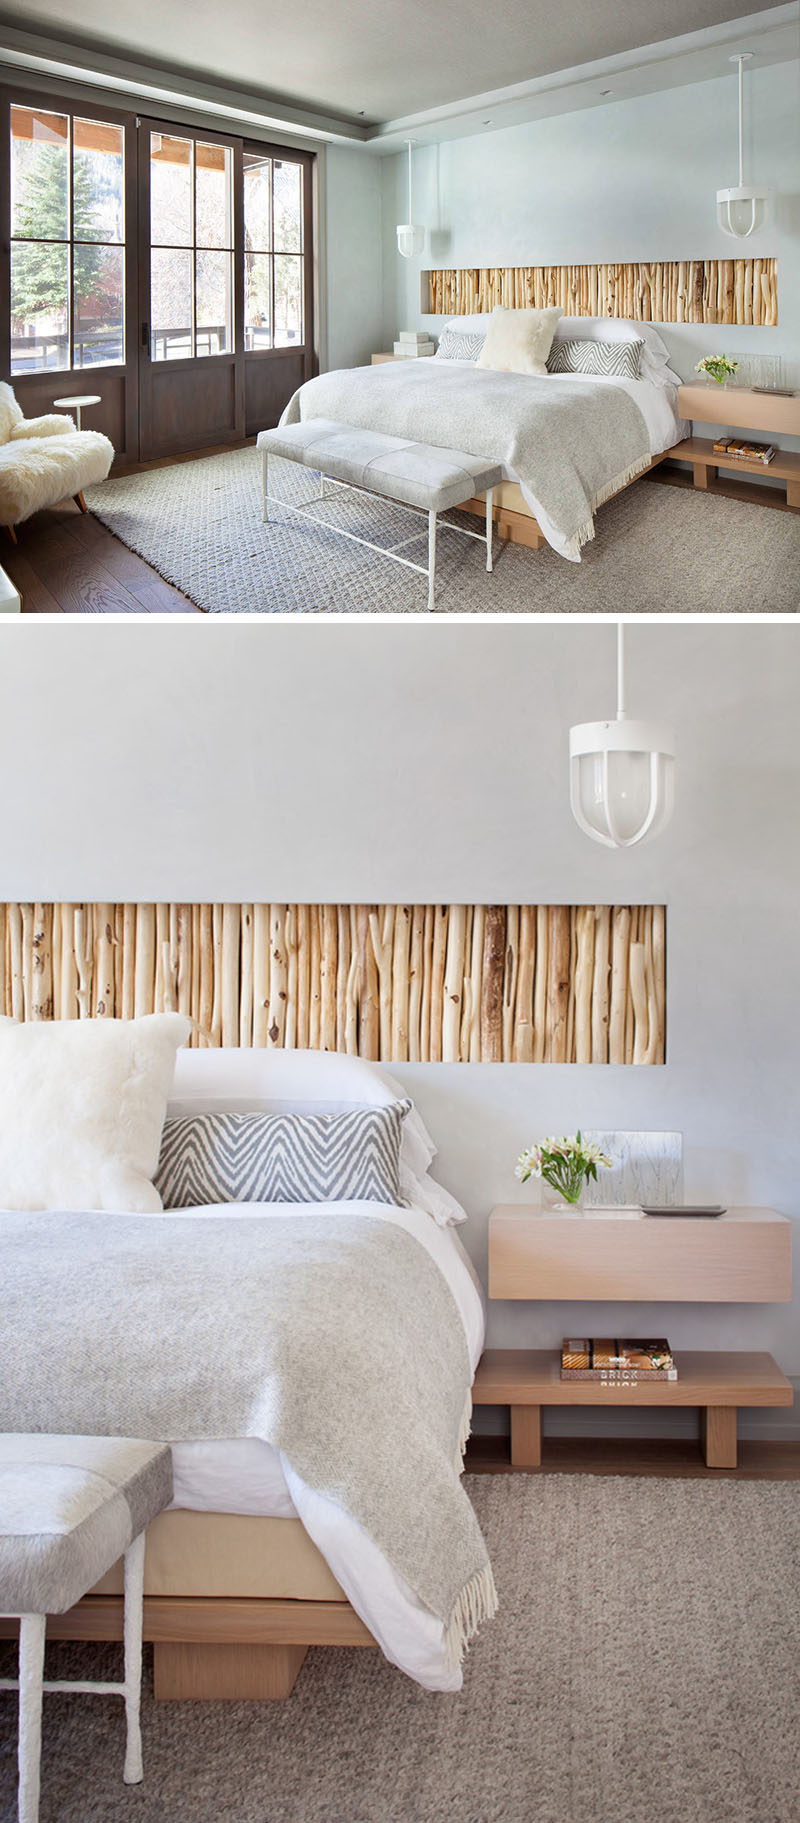 This bedroom has a recessed wall section filled with rustic branches that act as a headboard above the bed